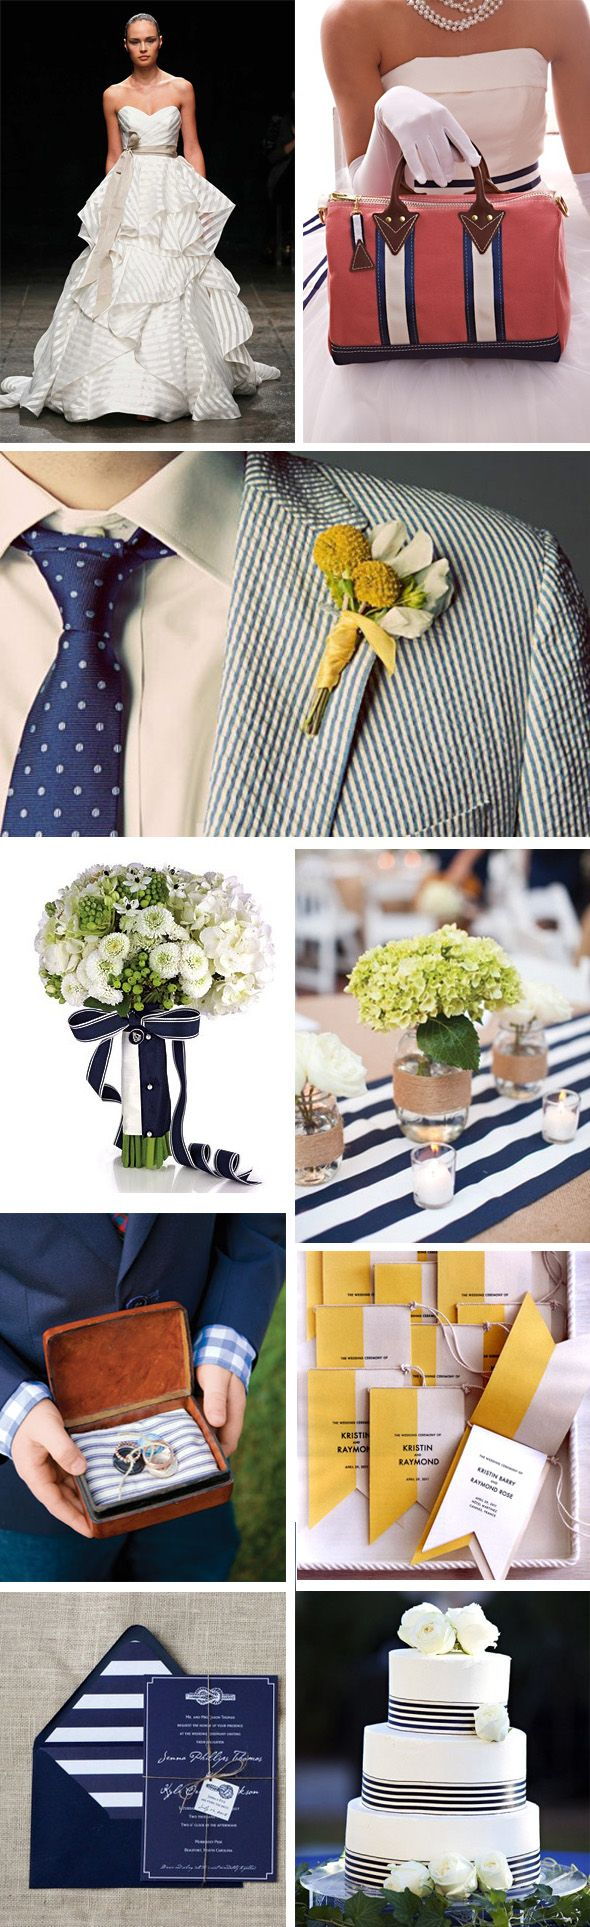 We were inspired by this sweet striped wedding dress, and it got us thinking about how much we love a preppy wedding. Rich colors, stripes, a bit flirty but still so chic and so today we're sharing a few fun preppy wedding ideas